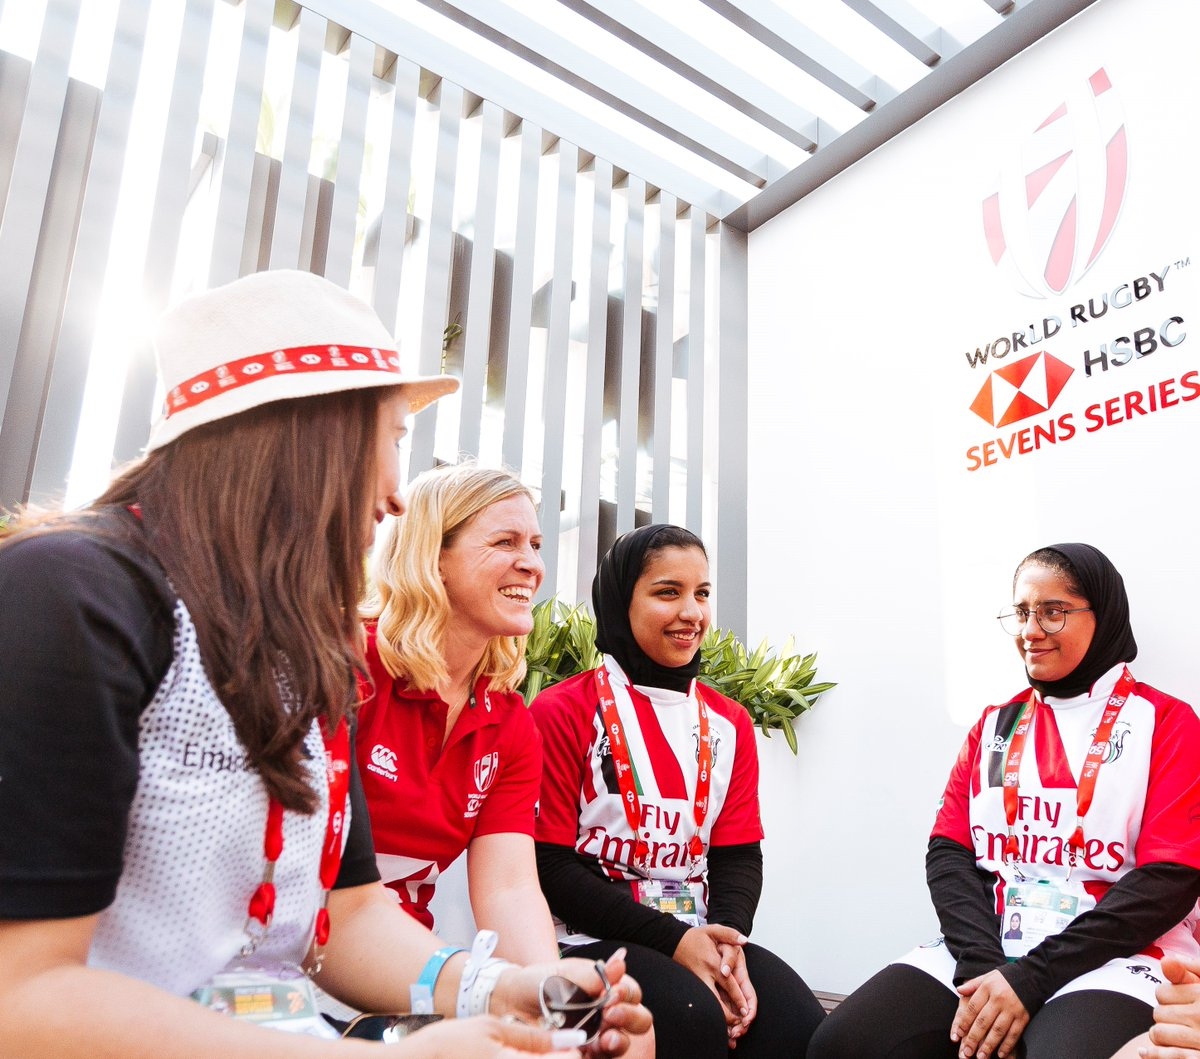 Inspiring change. The Al Maha team pioneering womens rugby in the UAE. #HSBC7s #Dubai7s #Rugby7s